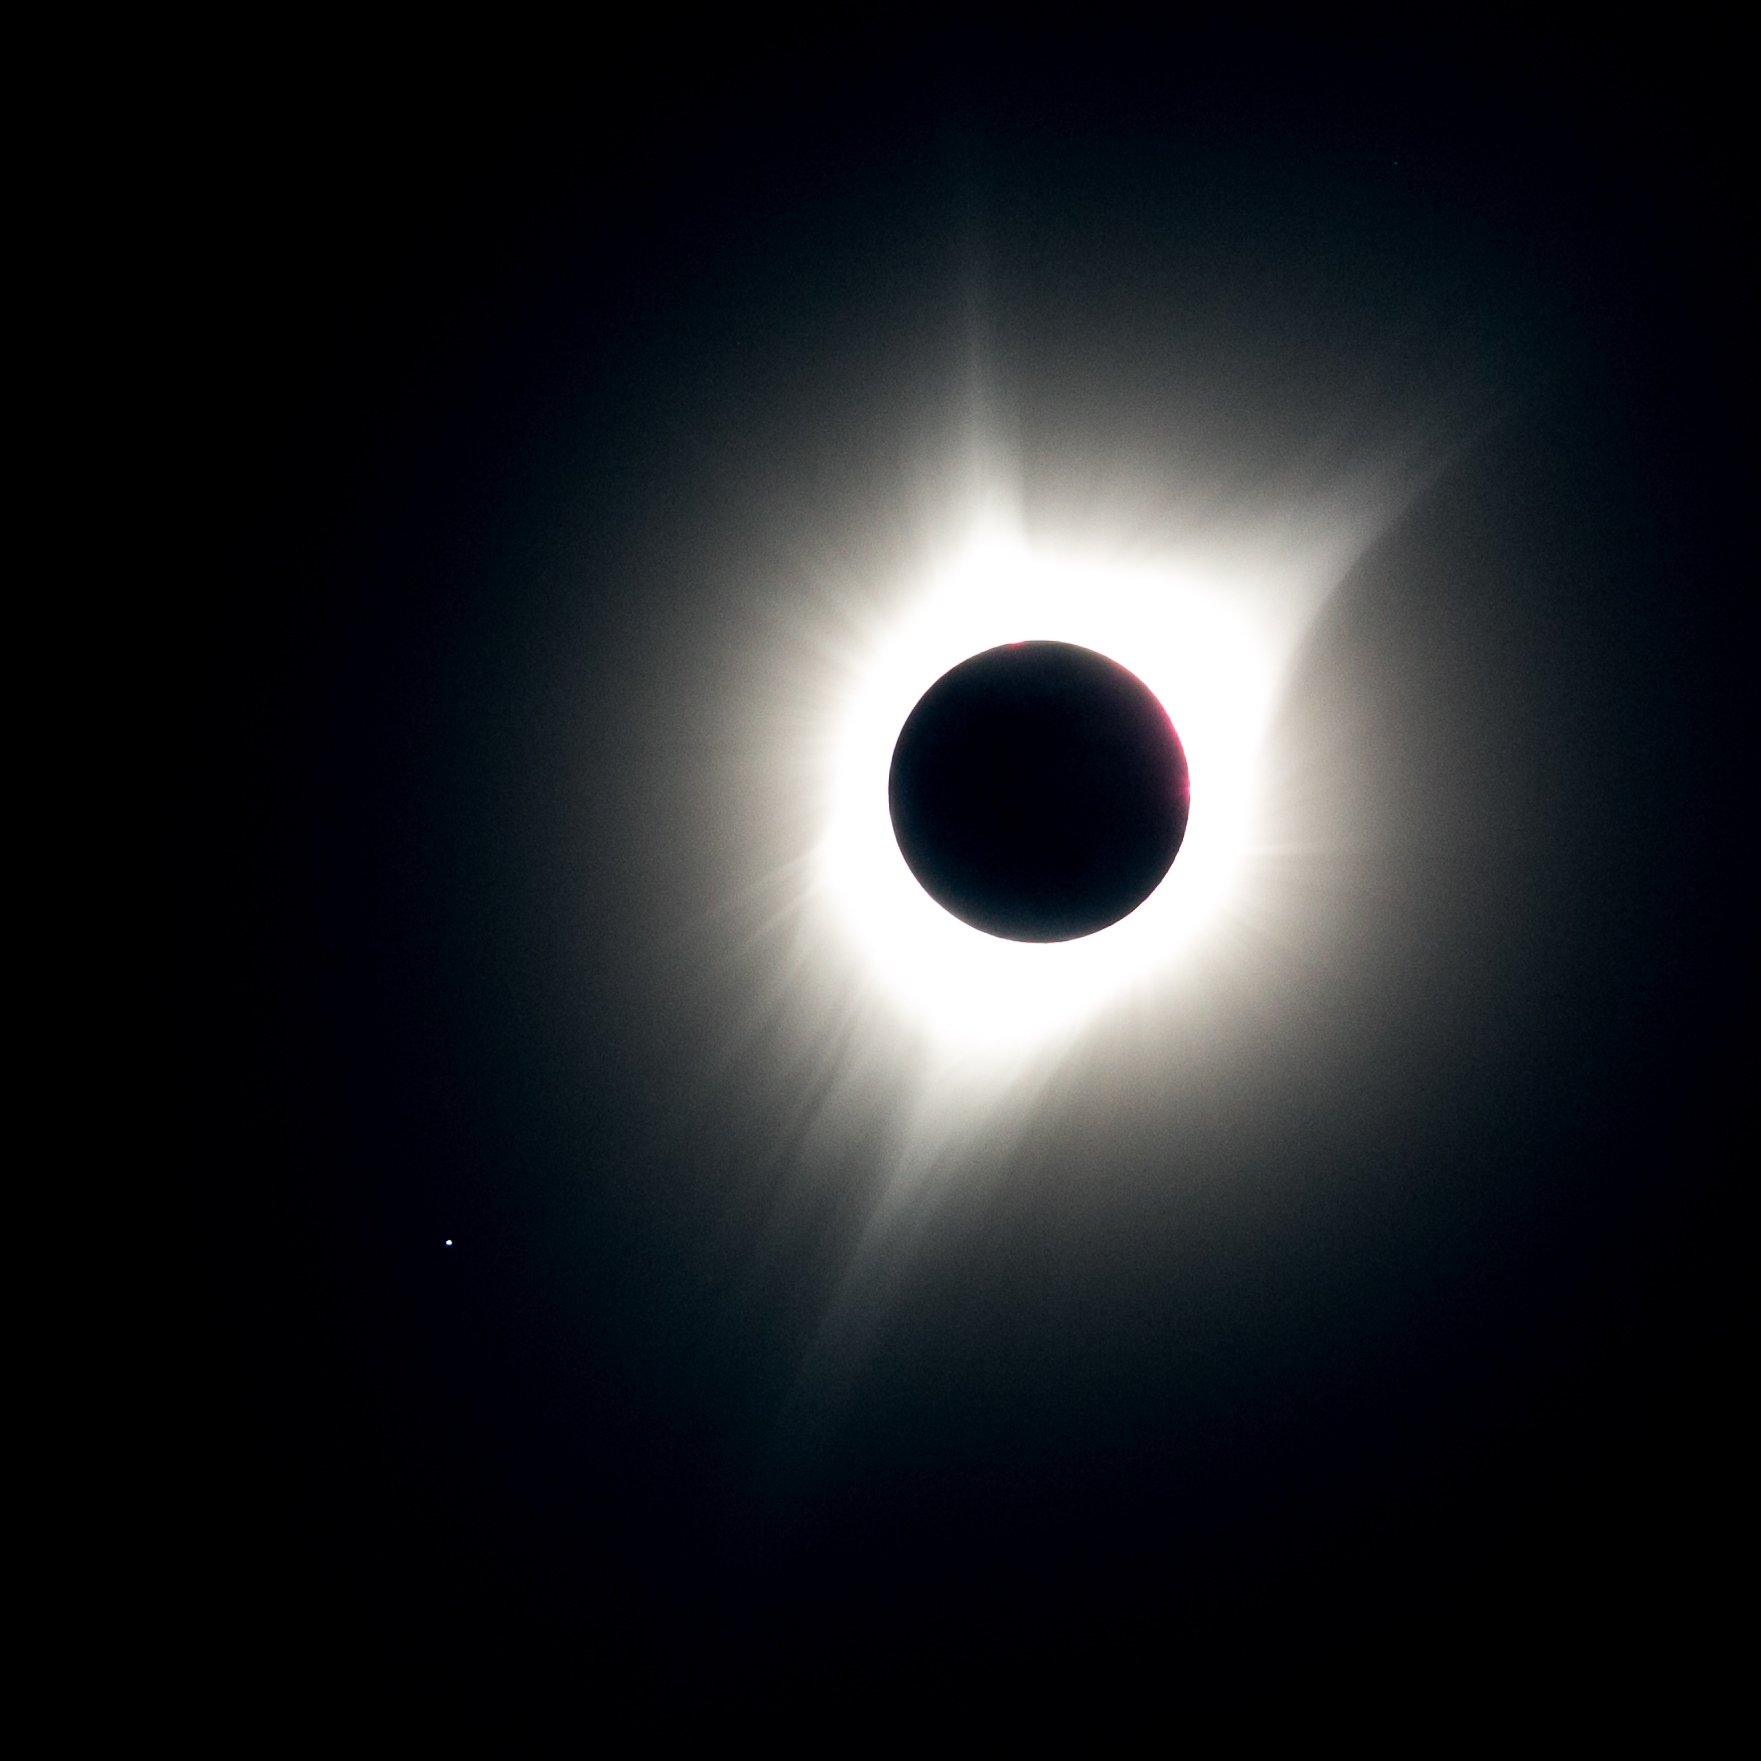 Total solar eclipse 2019: South America awaits sky show